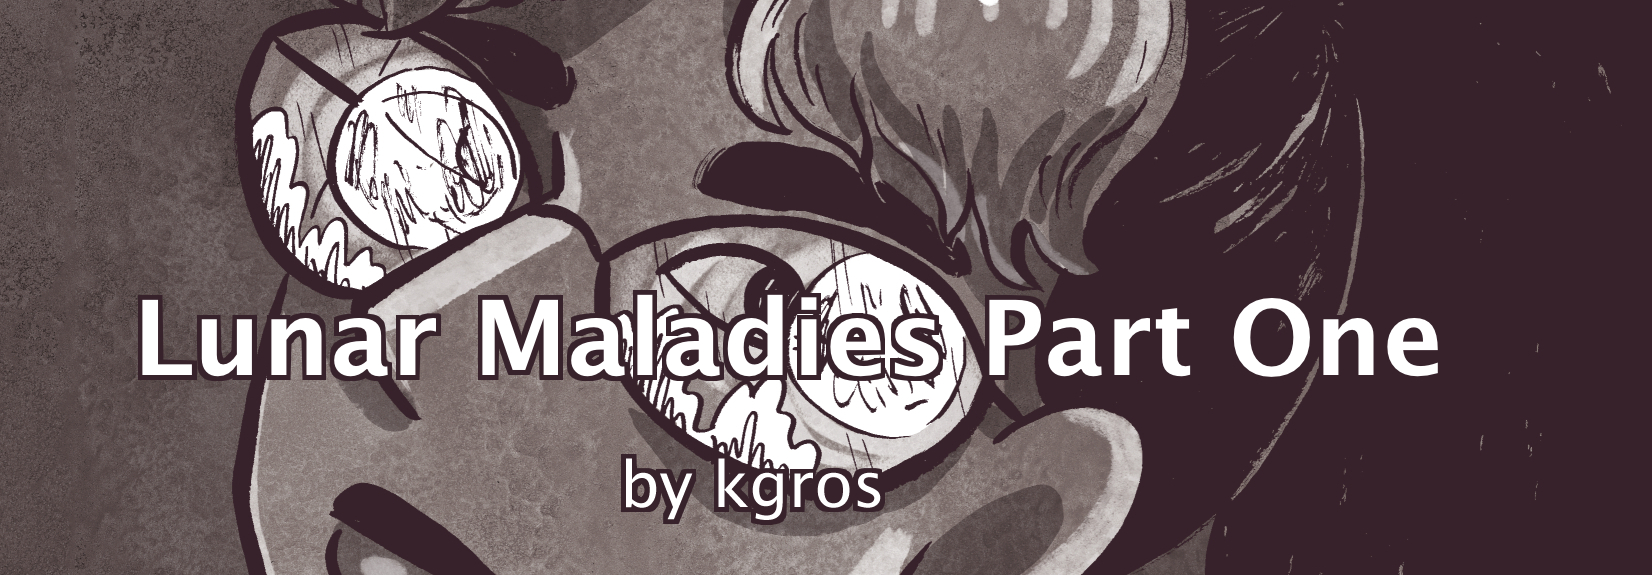 Lunar Maladies-Part One